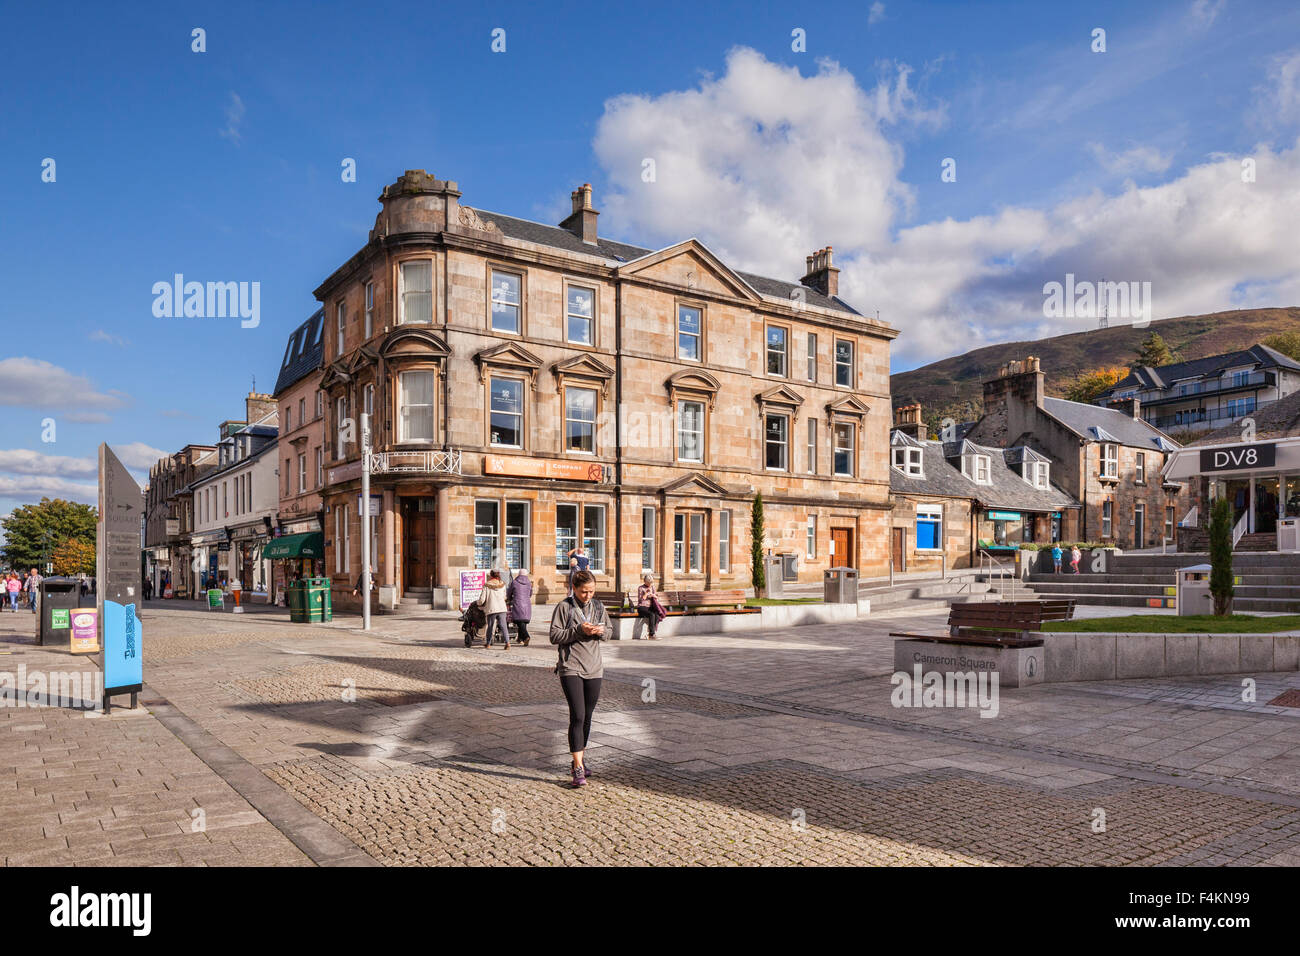 Cameron Square, in the centre of Fort William, Highland Region of Scotland, on a sunny autumn Sunday afternoon. Stock Photo